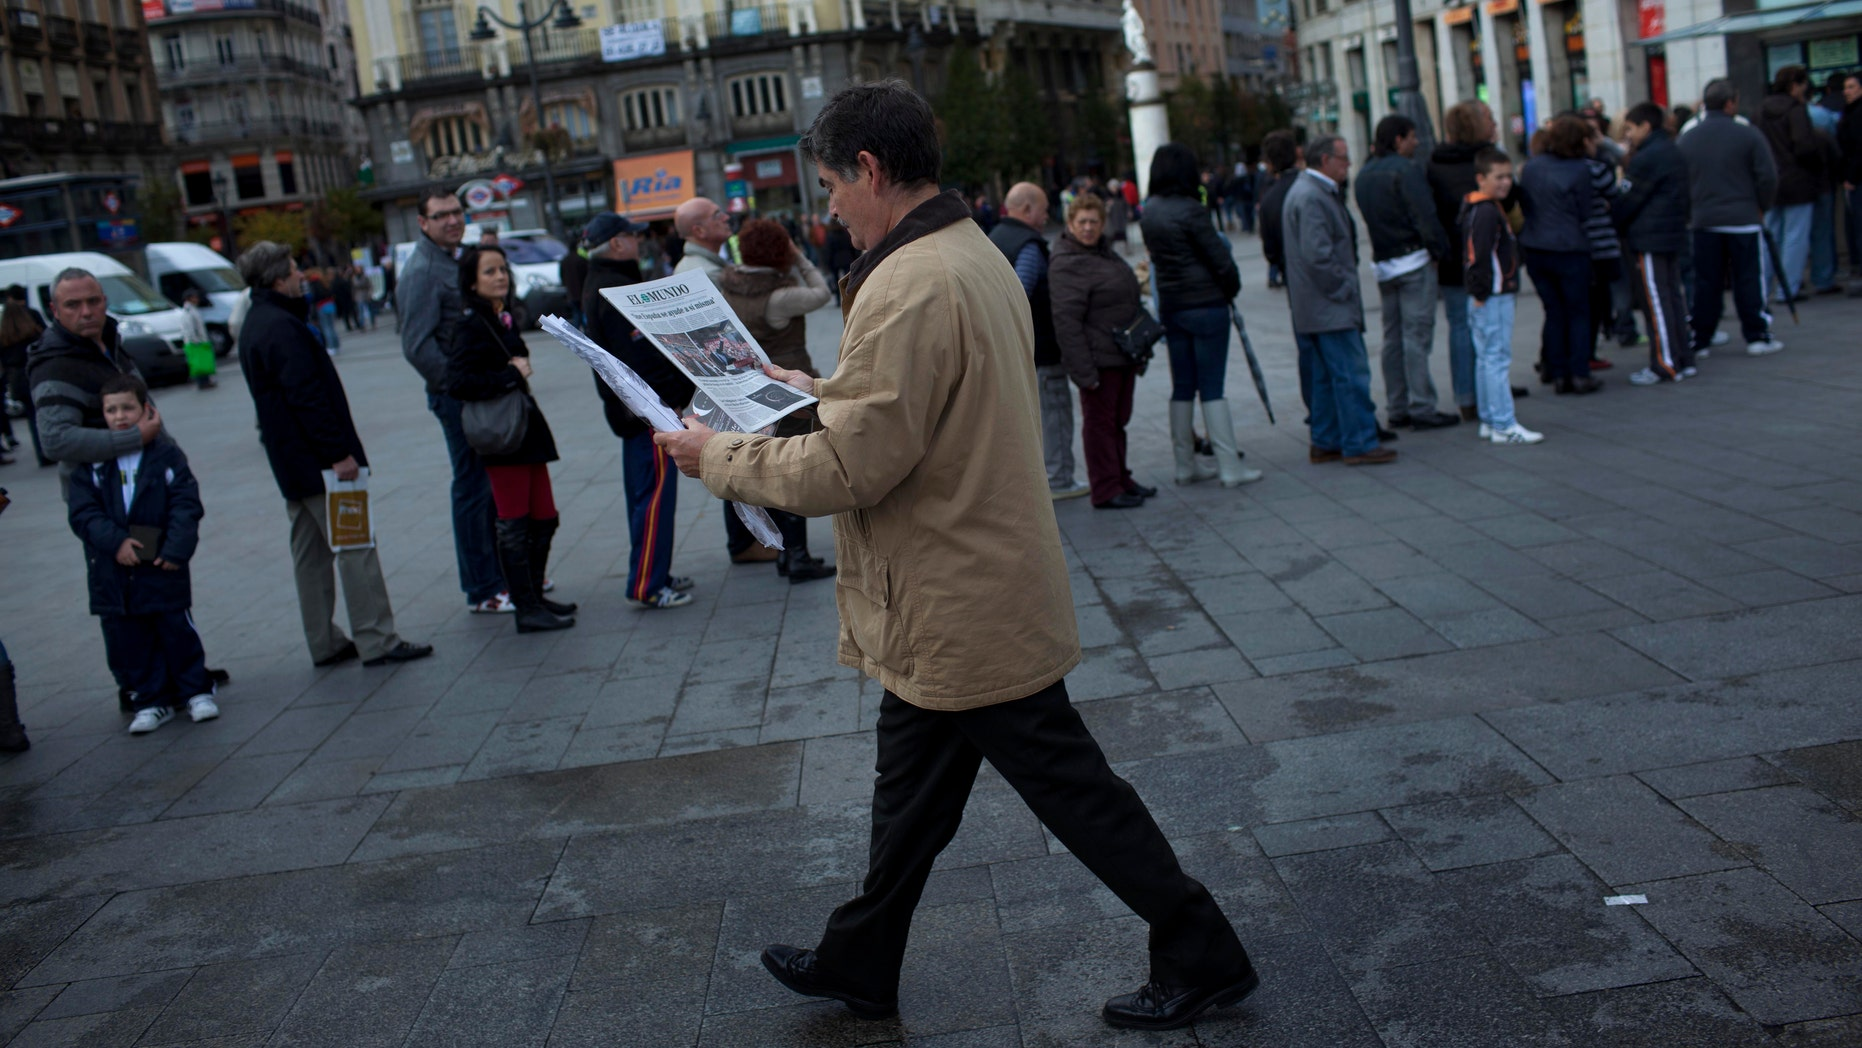 A man reads the news about the Spanish electoral campaign as others line up waiting to buy lottery in Madrid, Spain, Saturday, Nov. 19, 2011.  Spain will hold general elections on Nov. 20. (AP Photo/Emilio Morenatti)